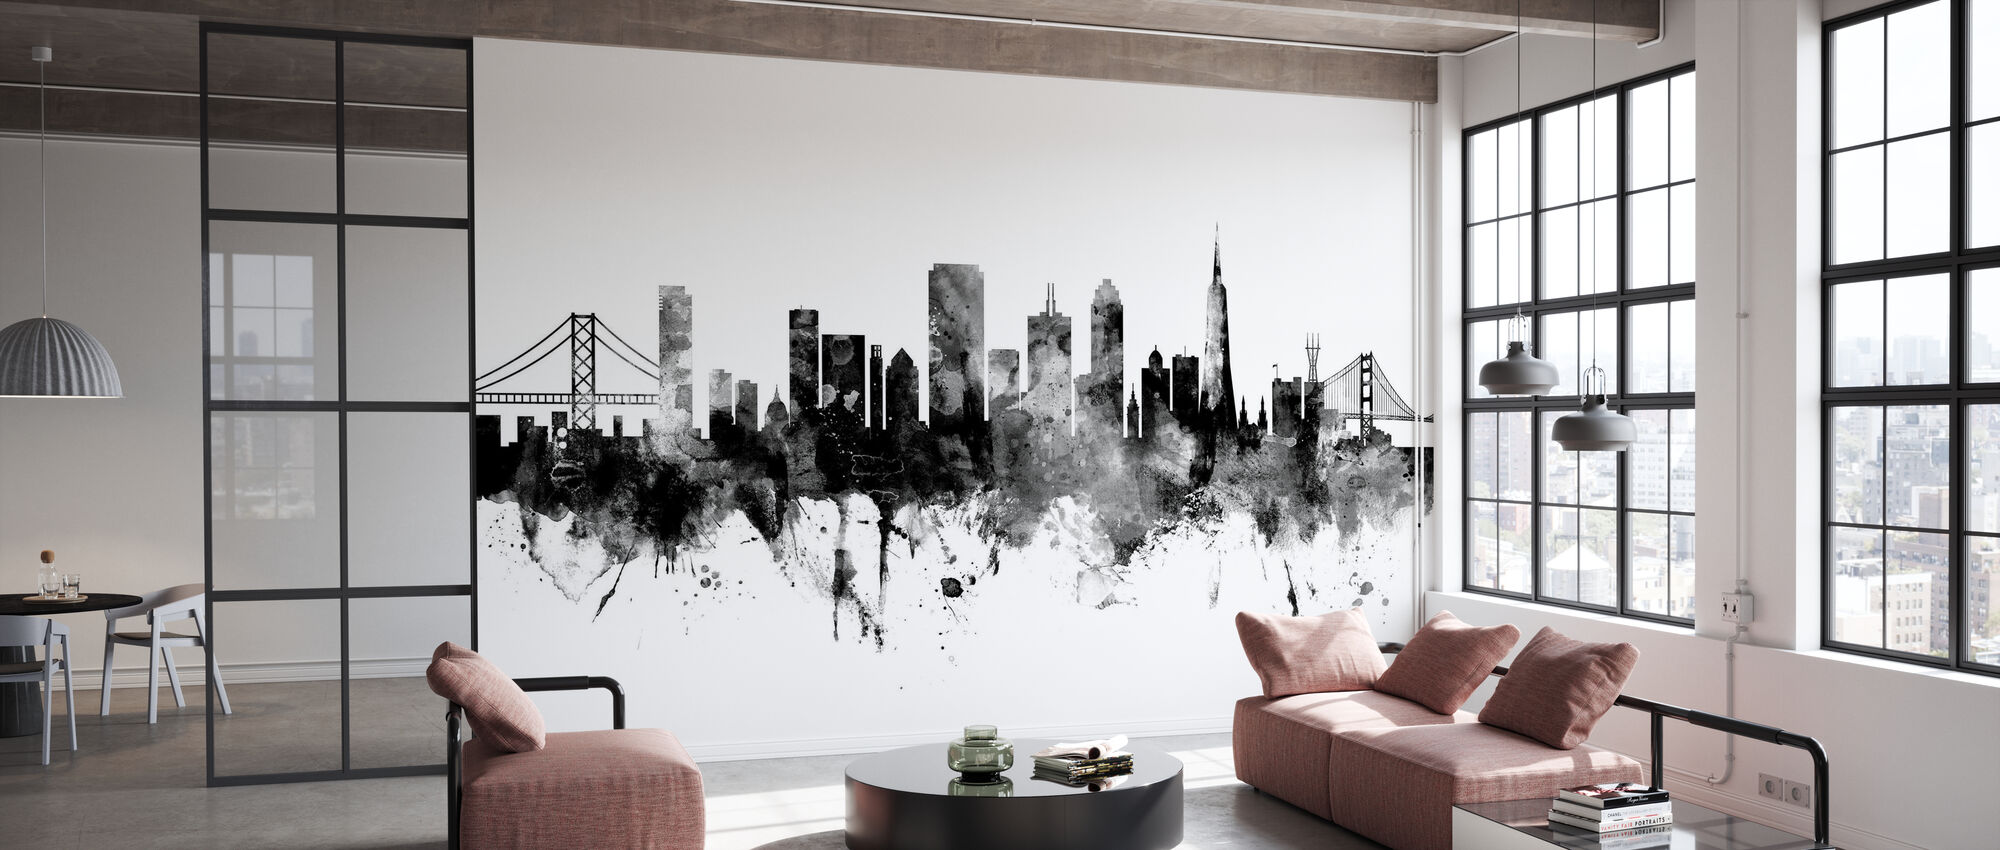 San Francisco City Skyline, black and white - Wallpaper - Office